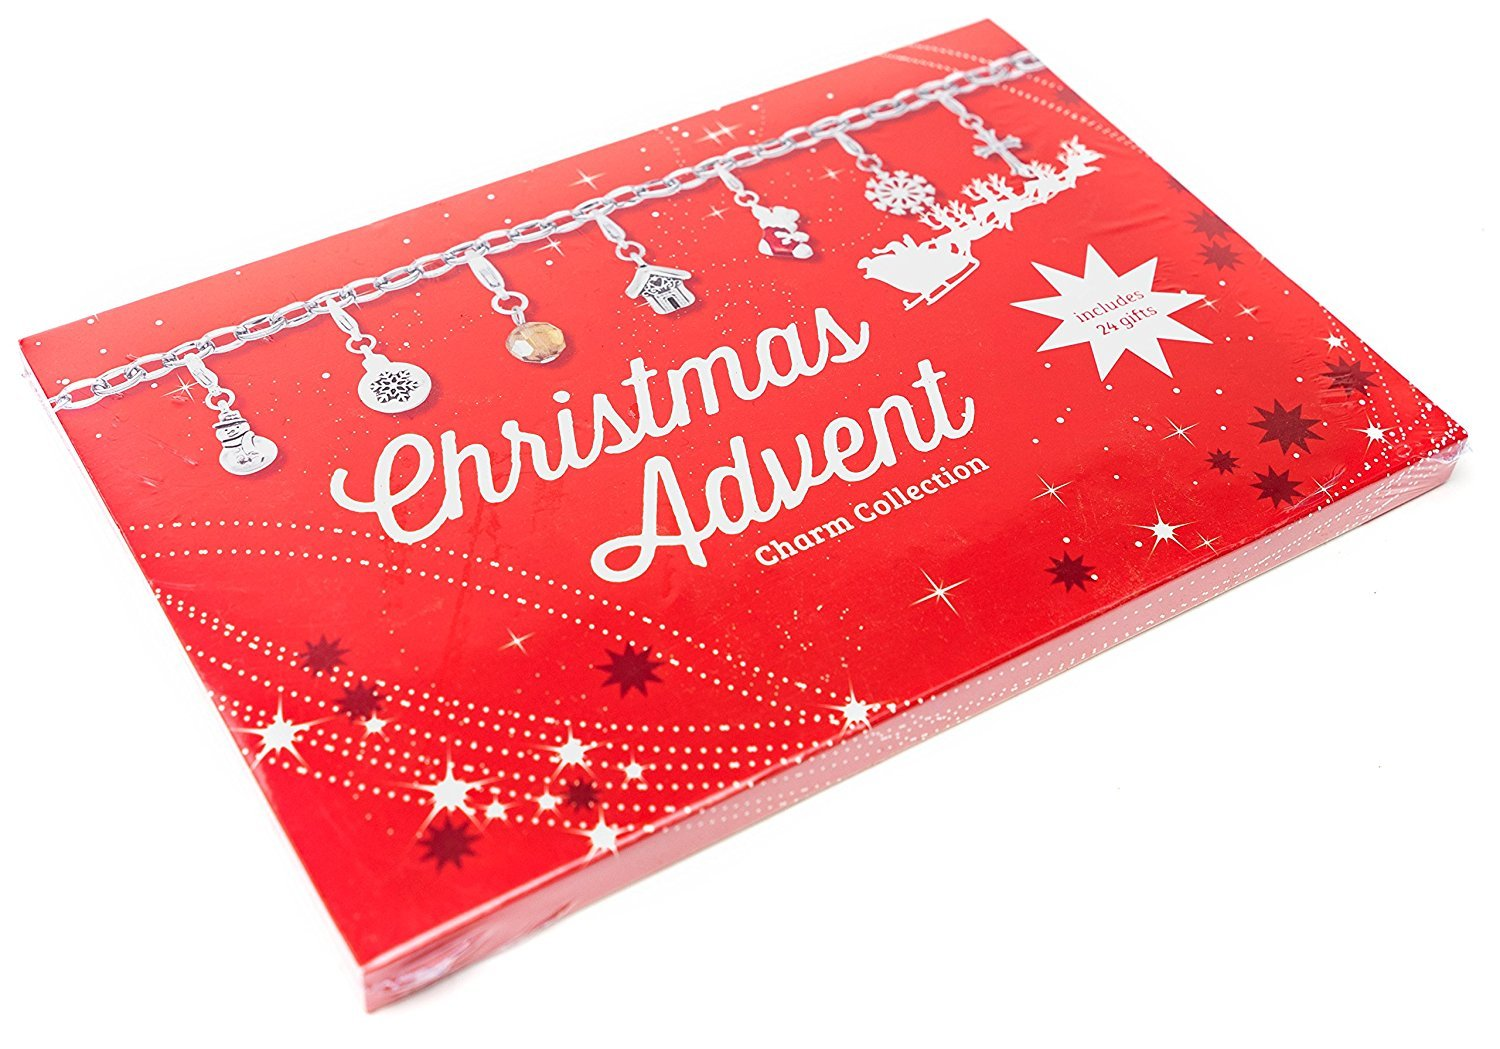 Christmas Advent Silver Plated Charm Collection, Includes 24 Gifts